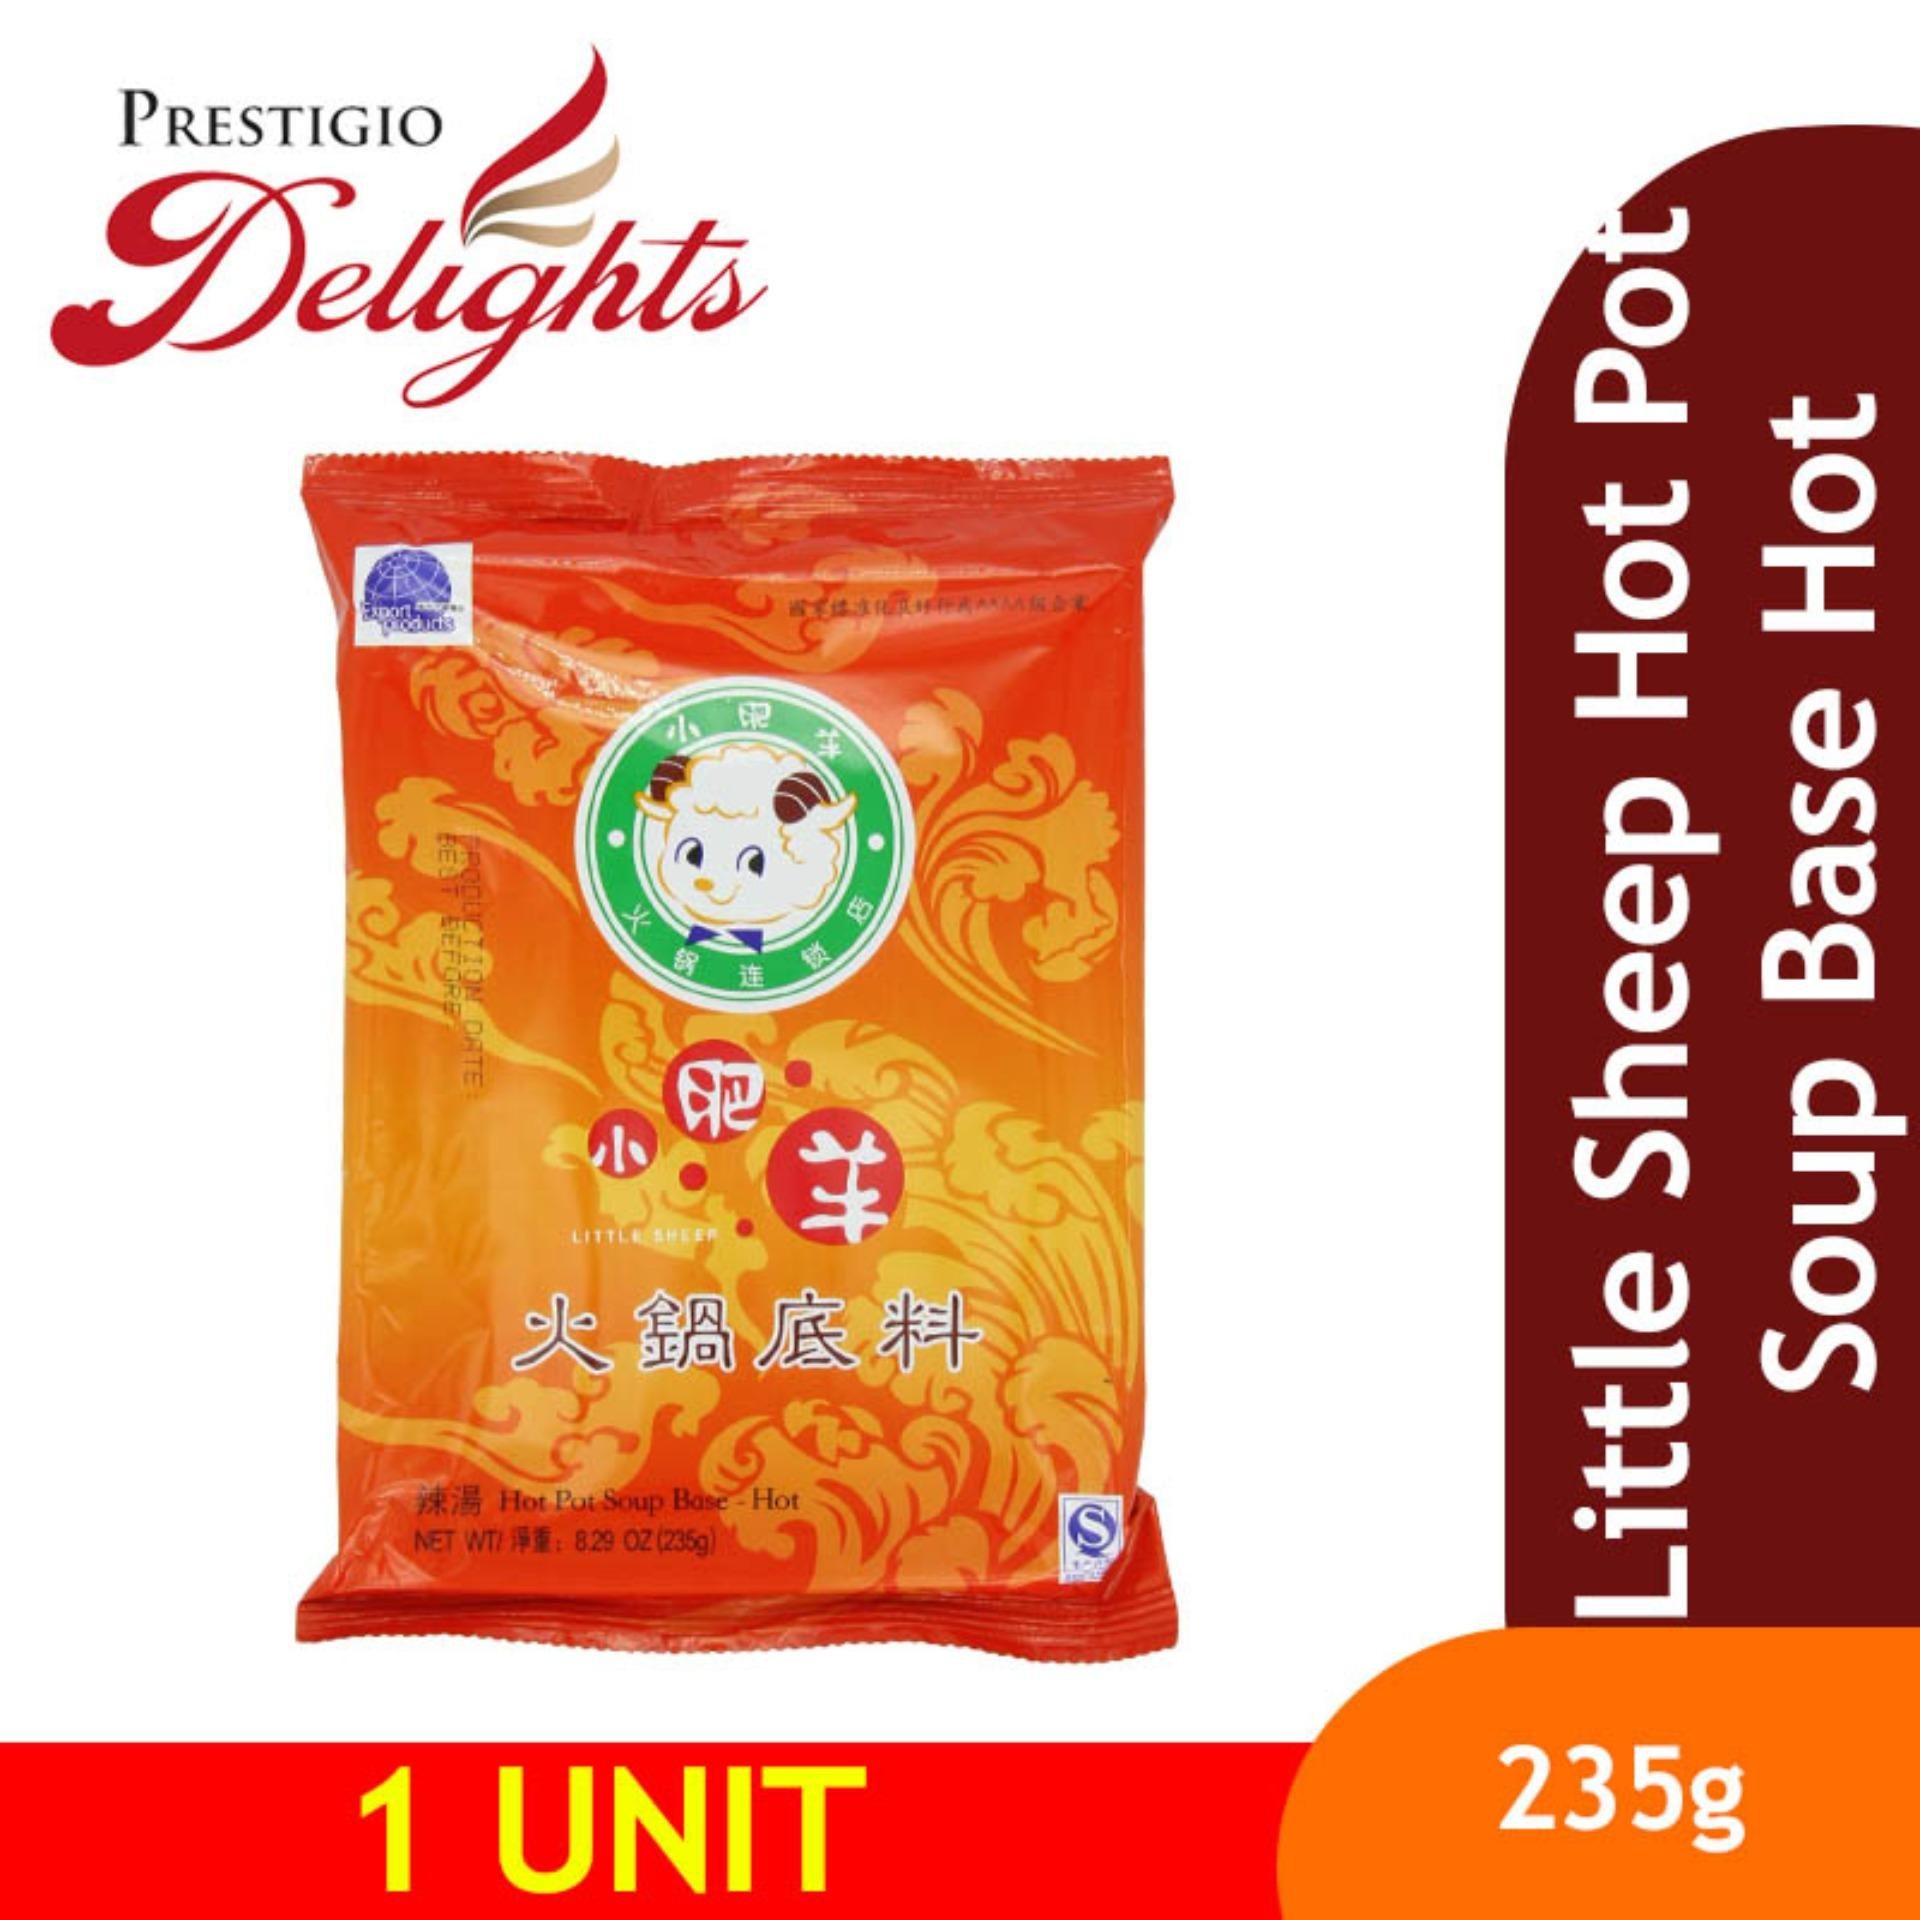 Little Sheep Hot Pot Soup Base Hot 235g By Prestigio Delights.